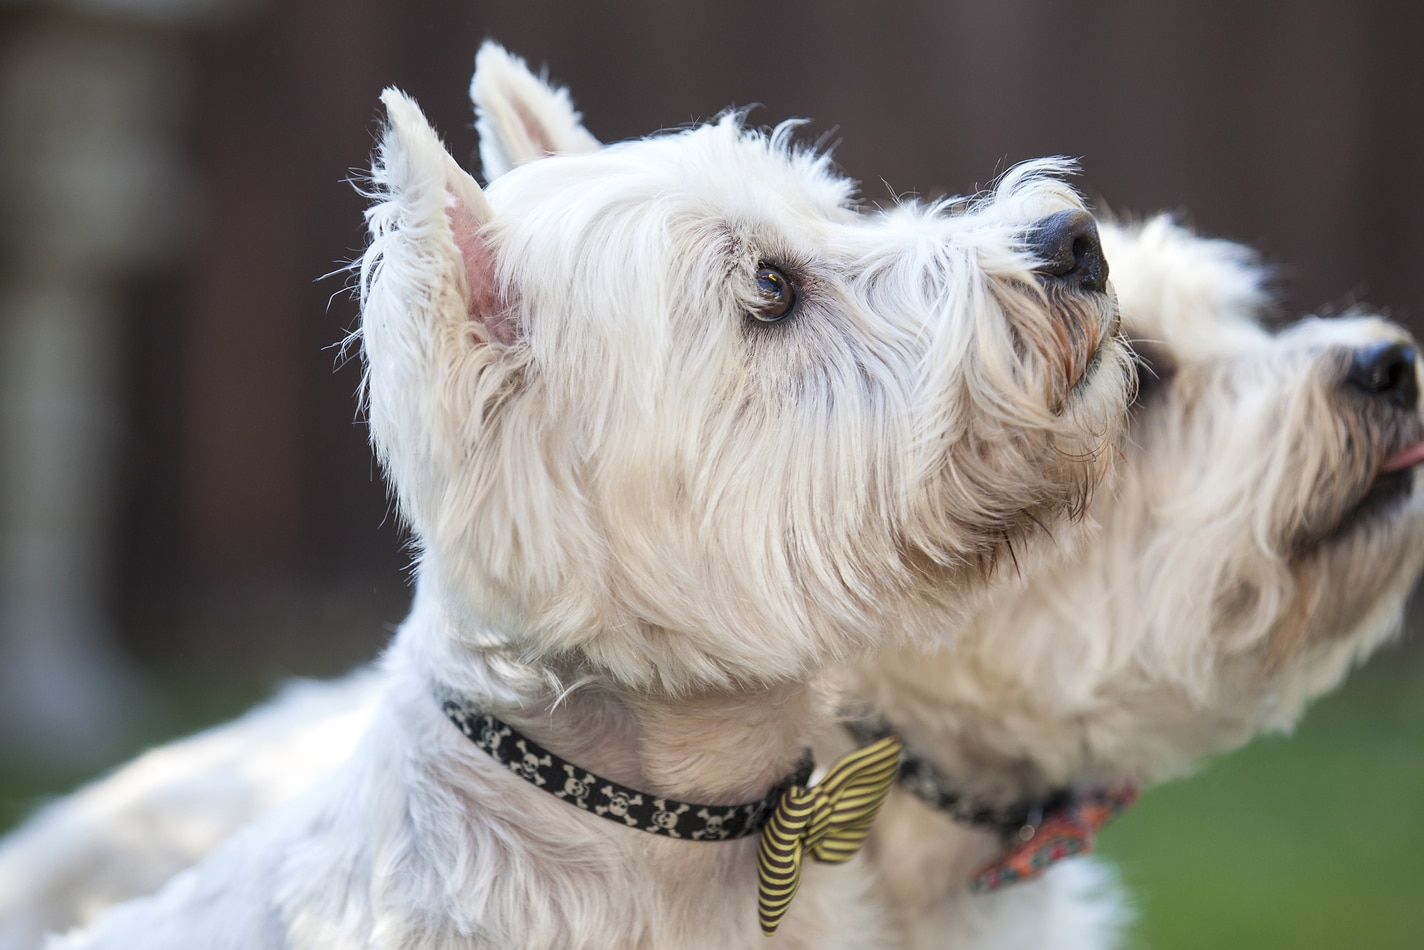 Two West Highland White Terriers looking up outside.